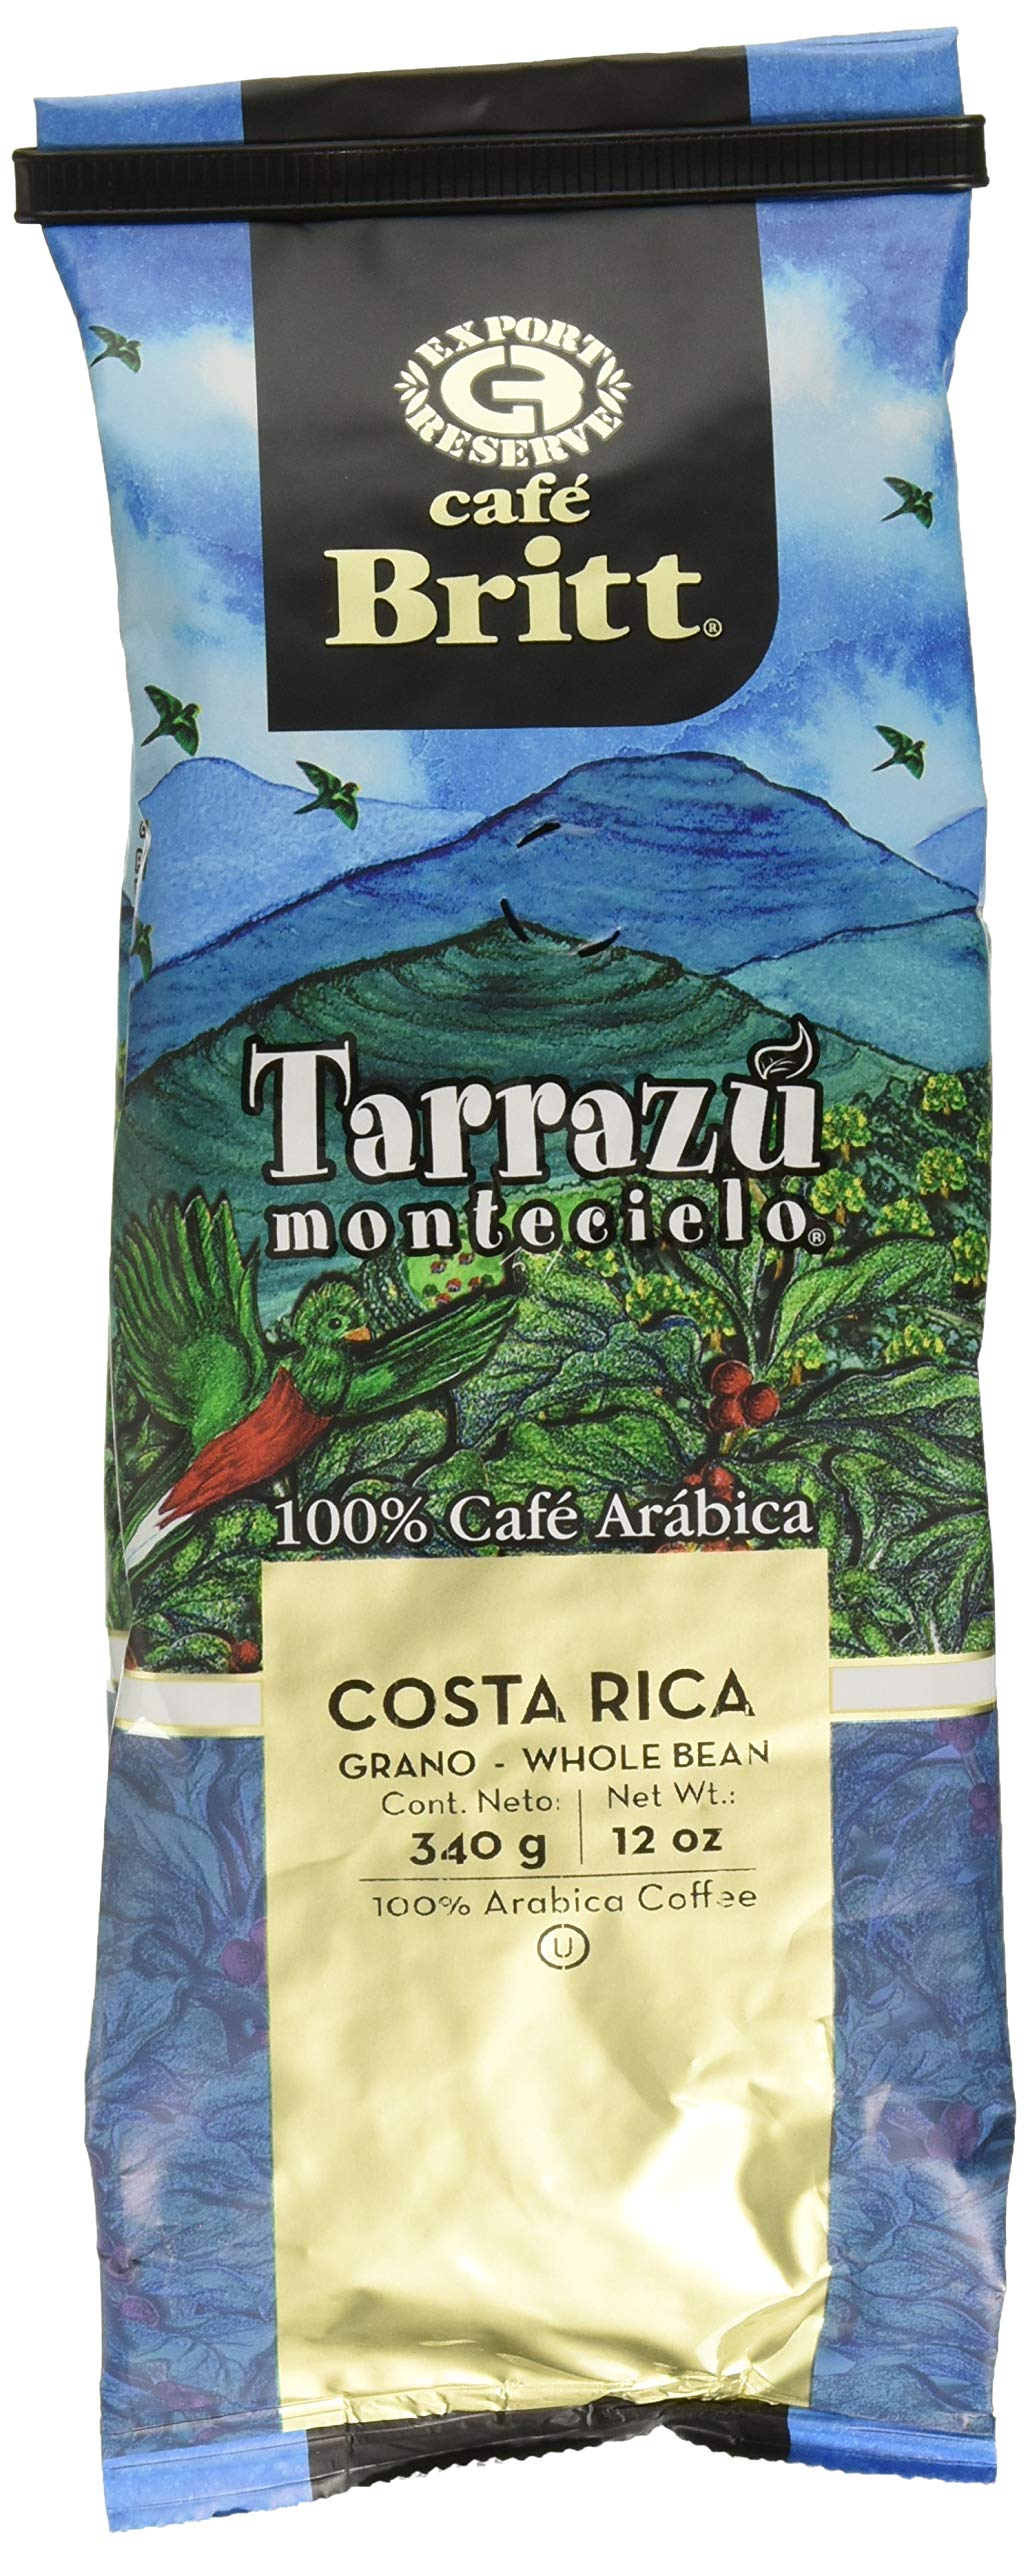 Cafe Britt Tarrazu Montecielo Whole Bean Coffee, 12-Ounce Bags (Pack of 2) by Cafe Britt